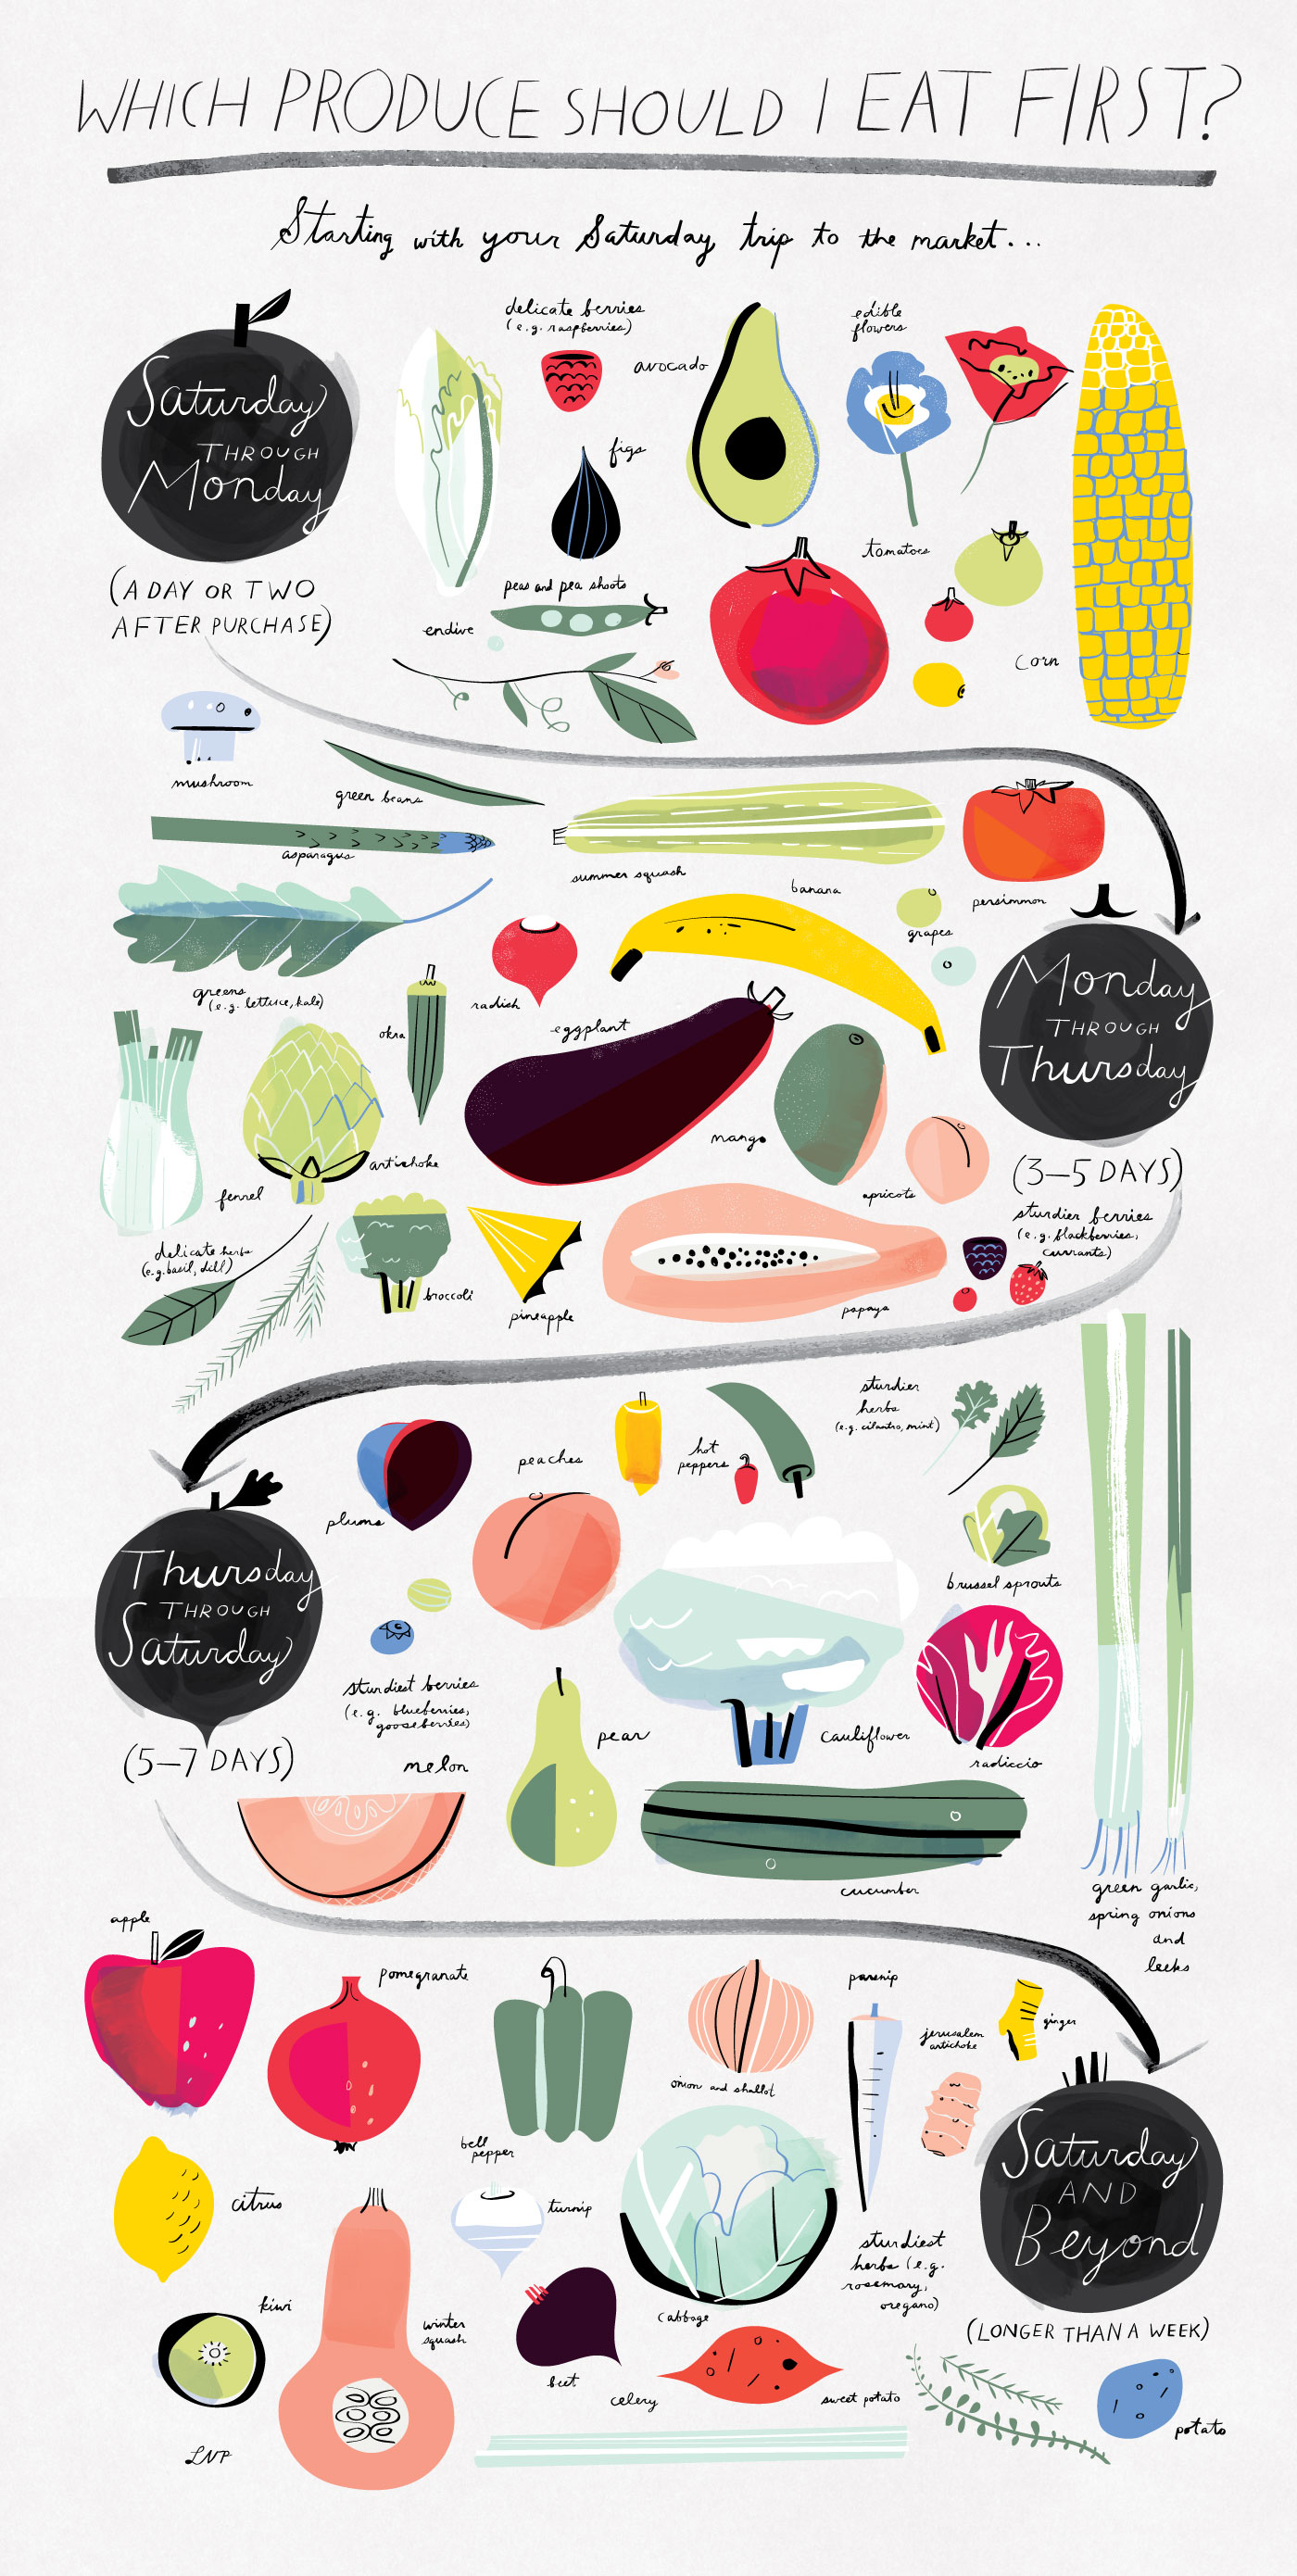 [Infographic] Which Produce Should I Eat First?